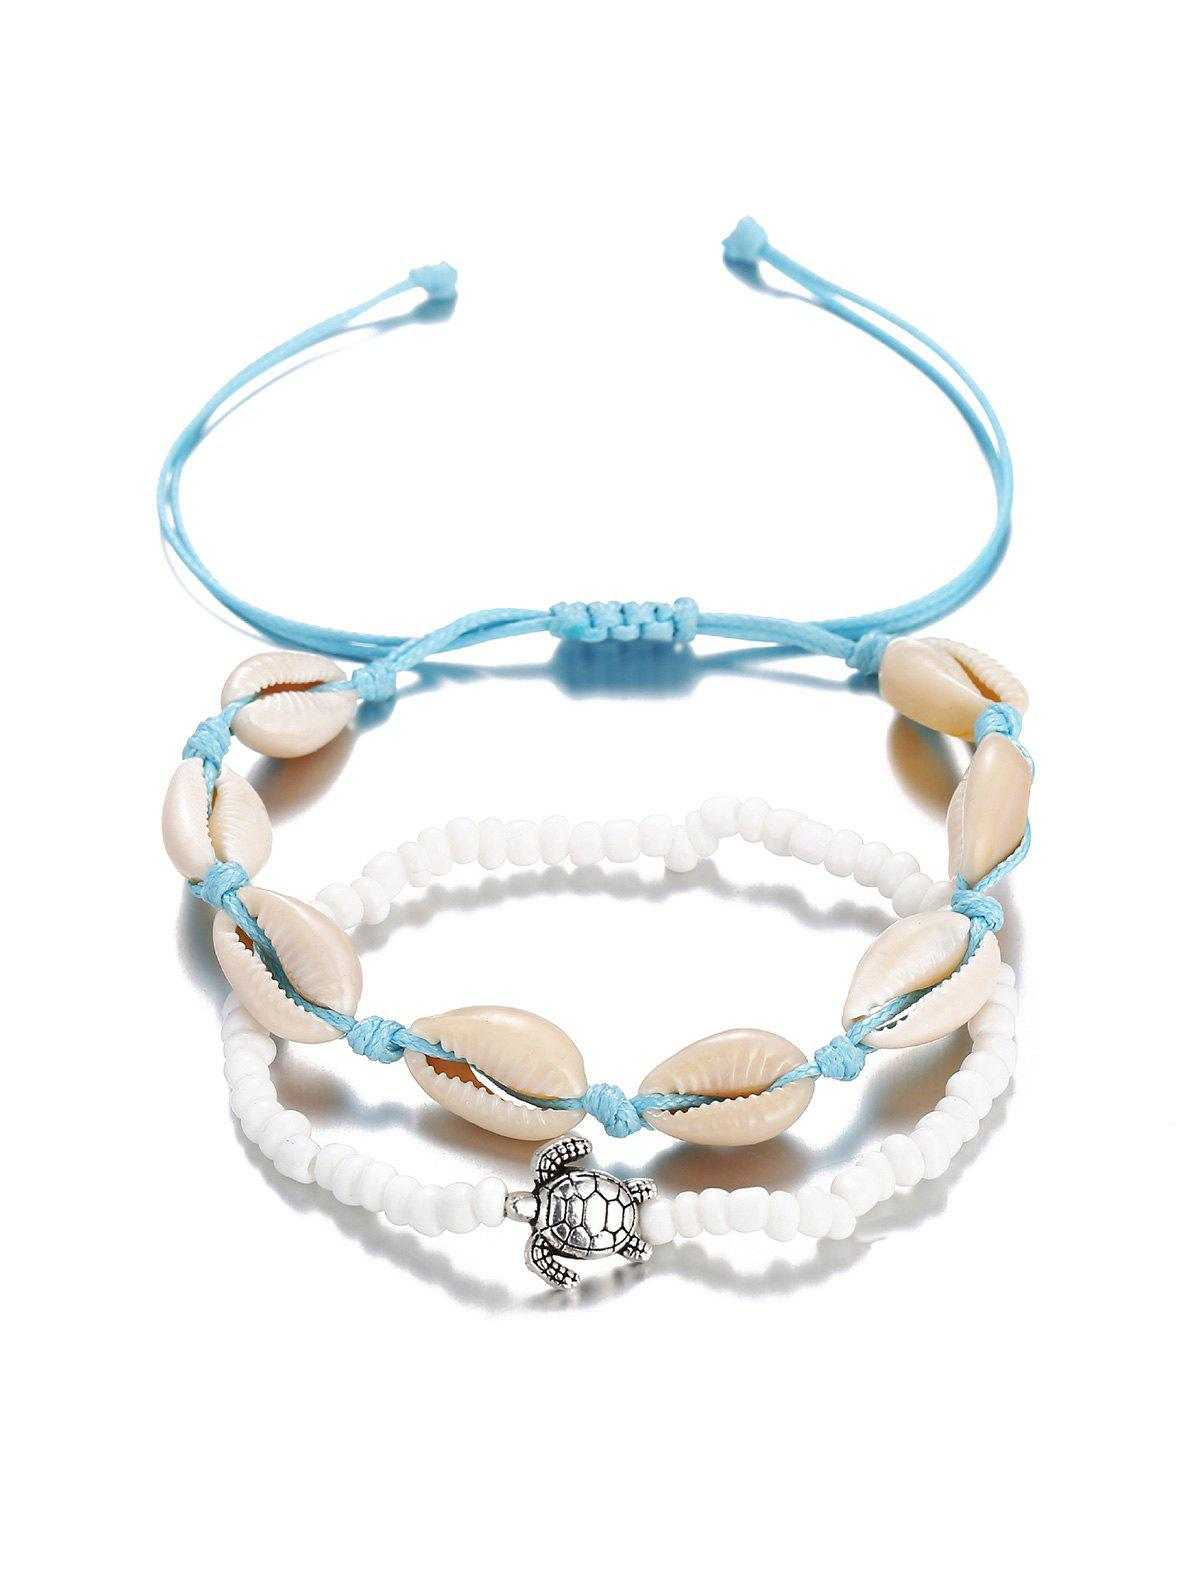 Turtle Cowrie Shell Beaded Beach Anklet Set, Day sky blue